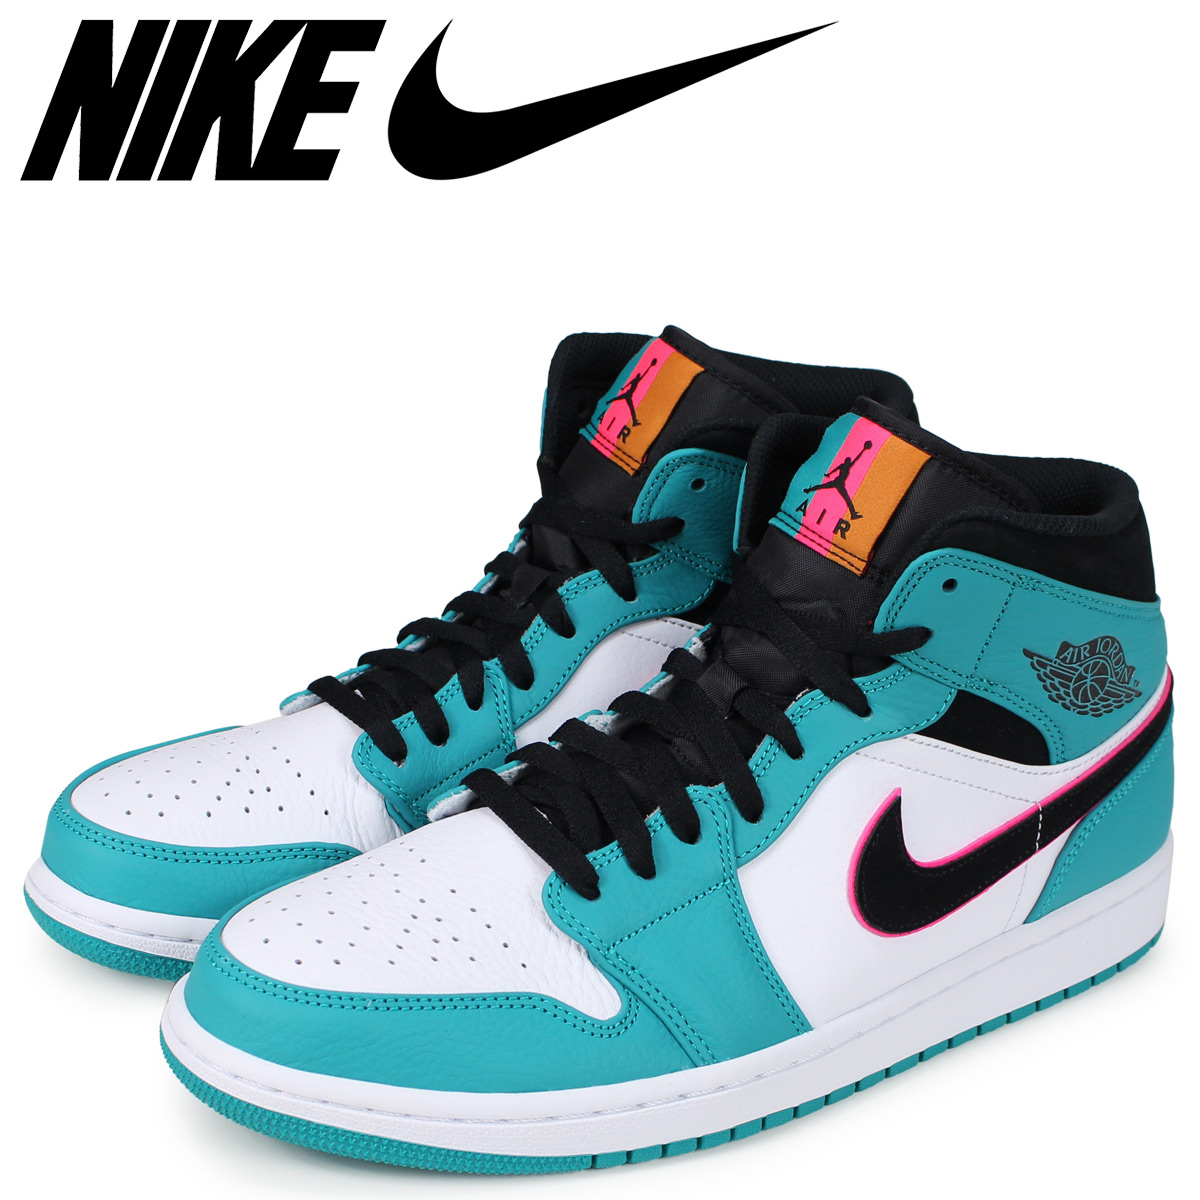 brand NIKE getting high popularity from sneakers freak . A mid cut model  appears from AIR JORDAN 1 ... 569358de6